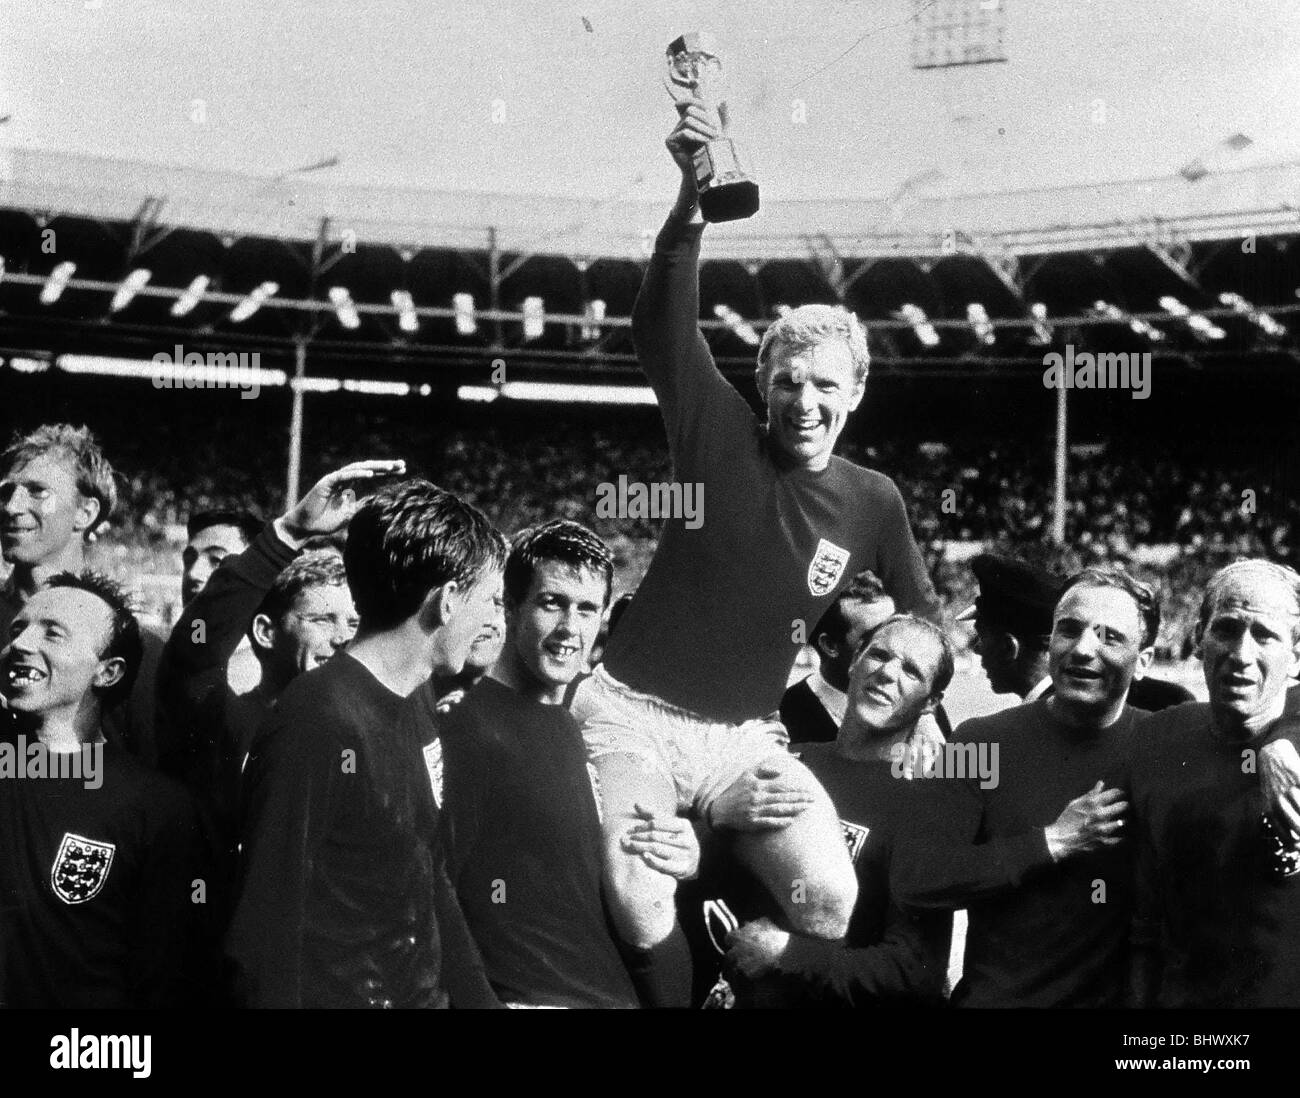 Final de la Copa Mundial de Julio de 1966 en el estadio de Wembley Inglaterra 4 v Alemania Occidental 2 después Foto de stock